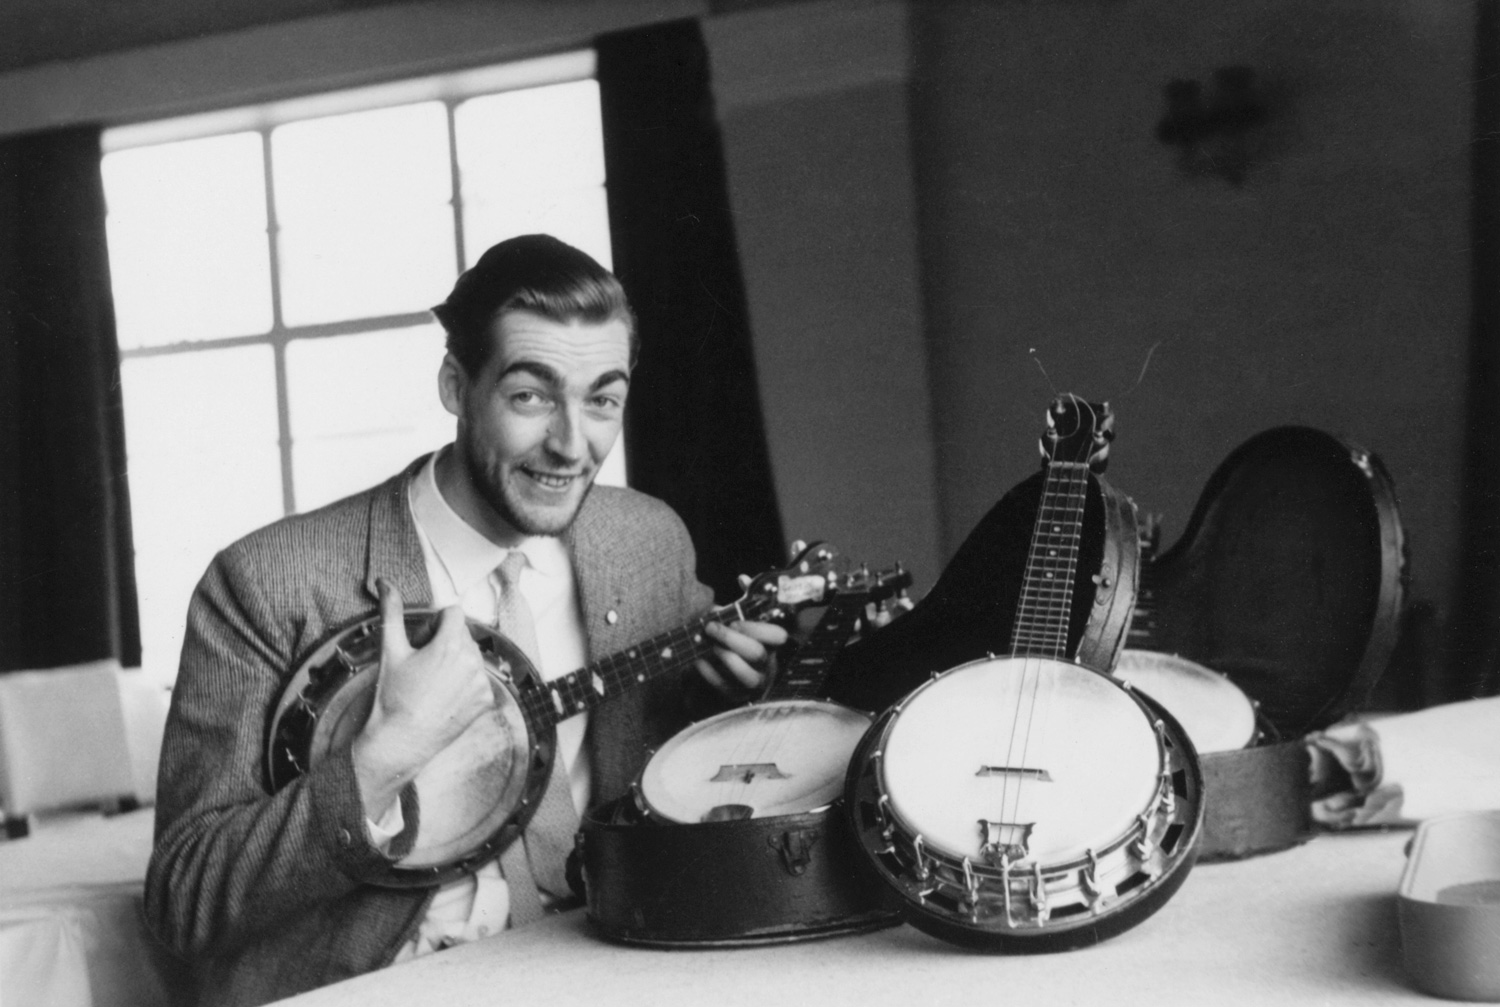 Kevin playing one of George Forby's ukuleles at the George Formby Society meeting in Blackpool, 16 December 1961